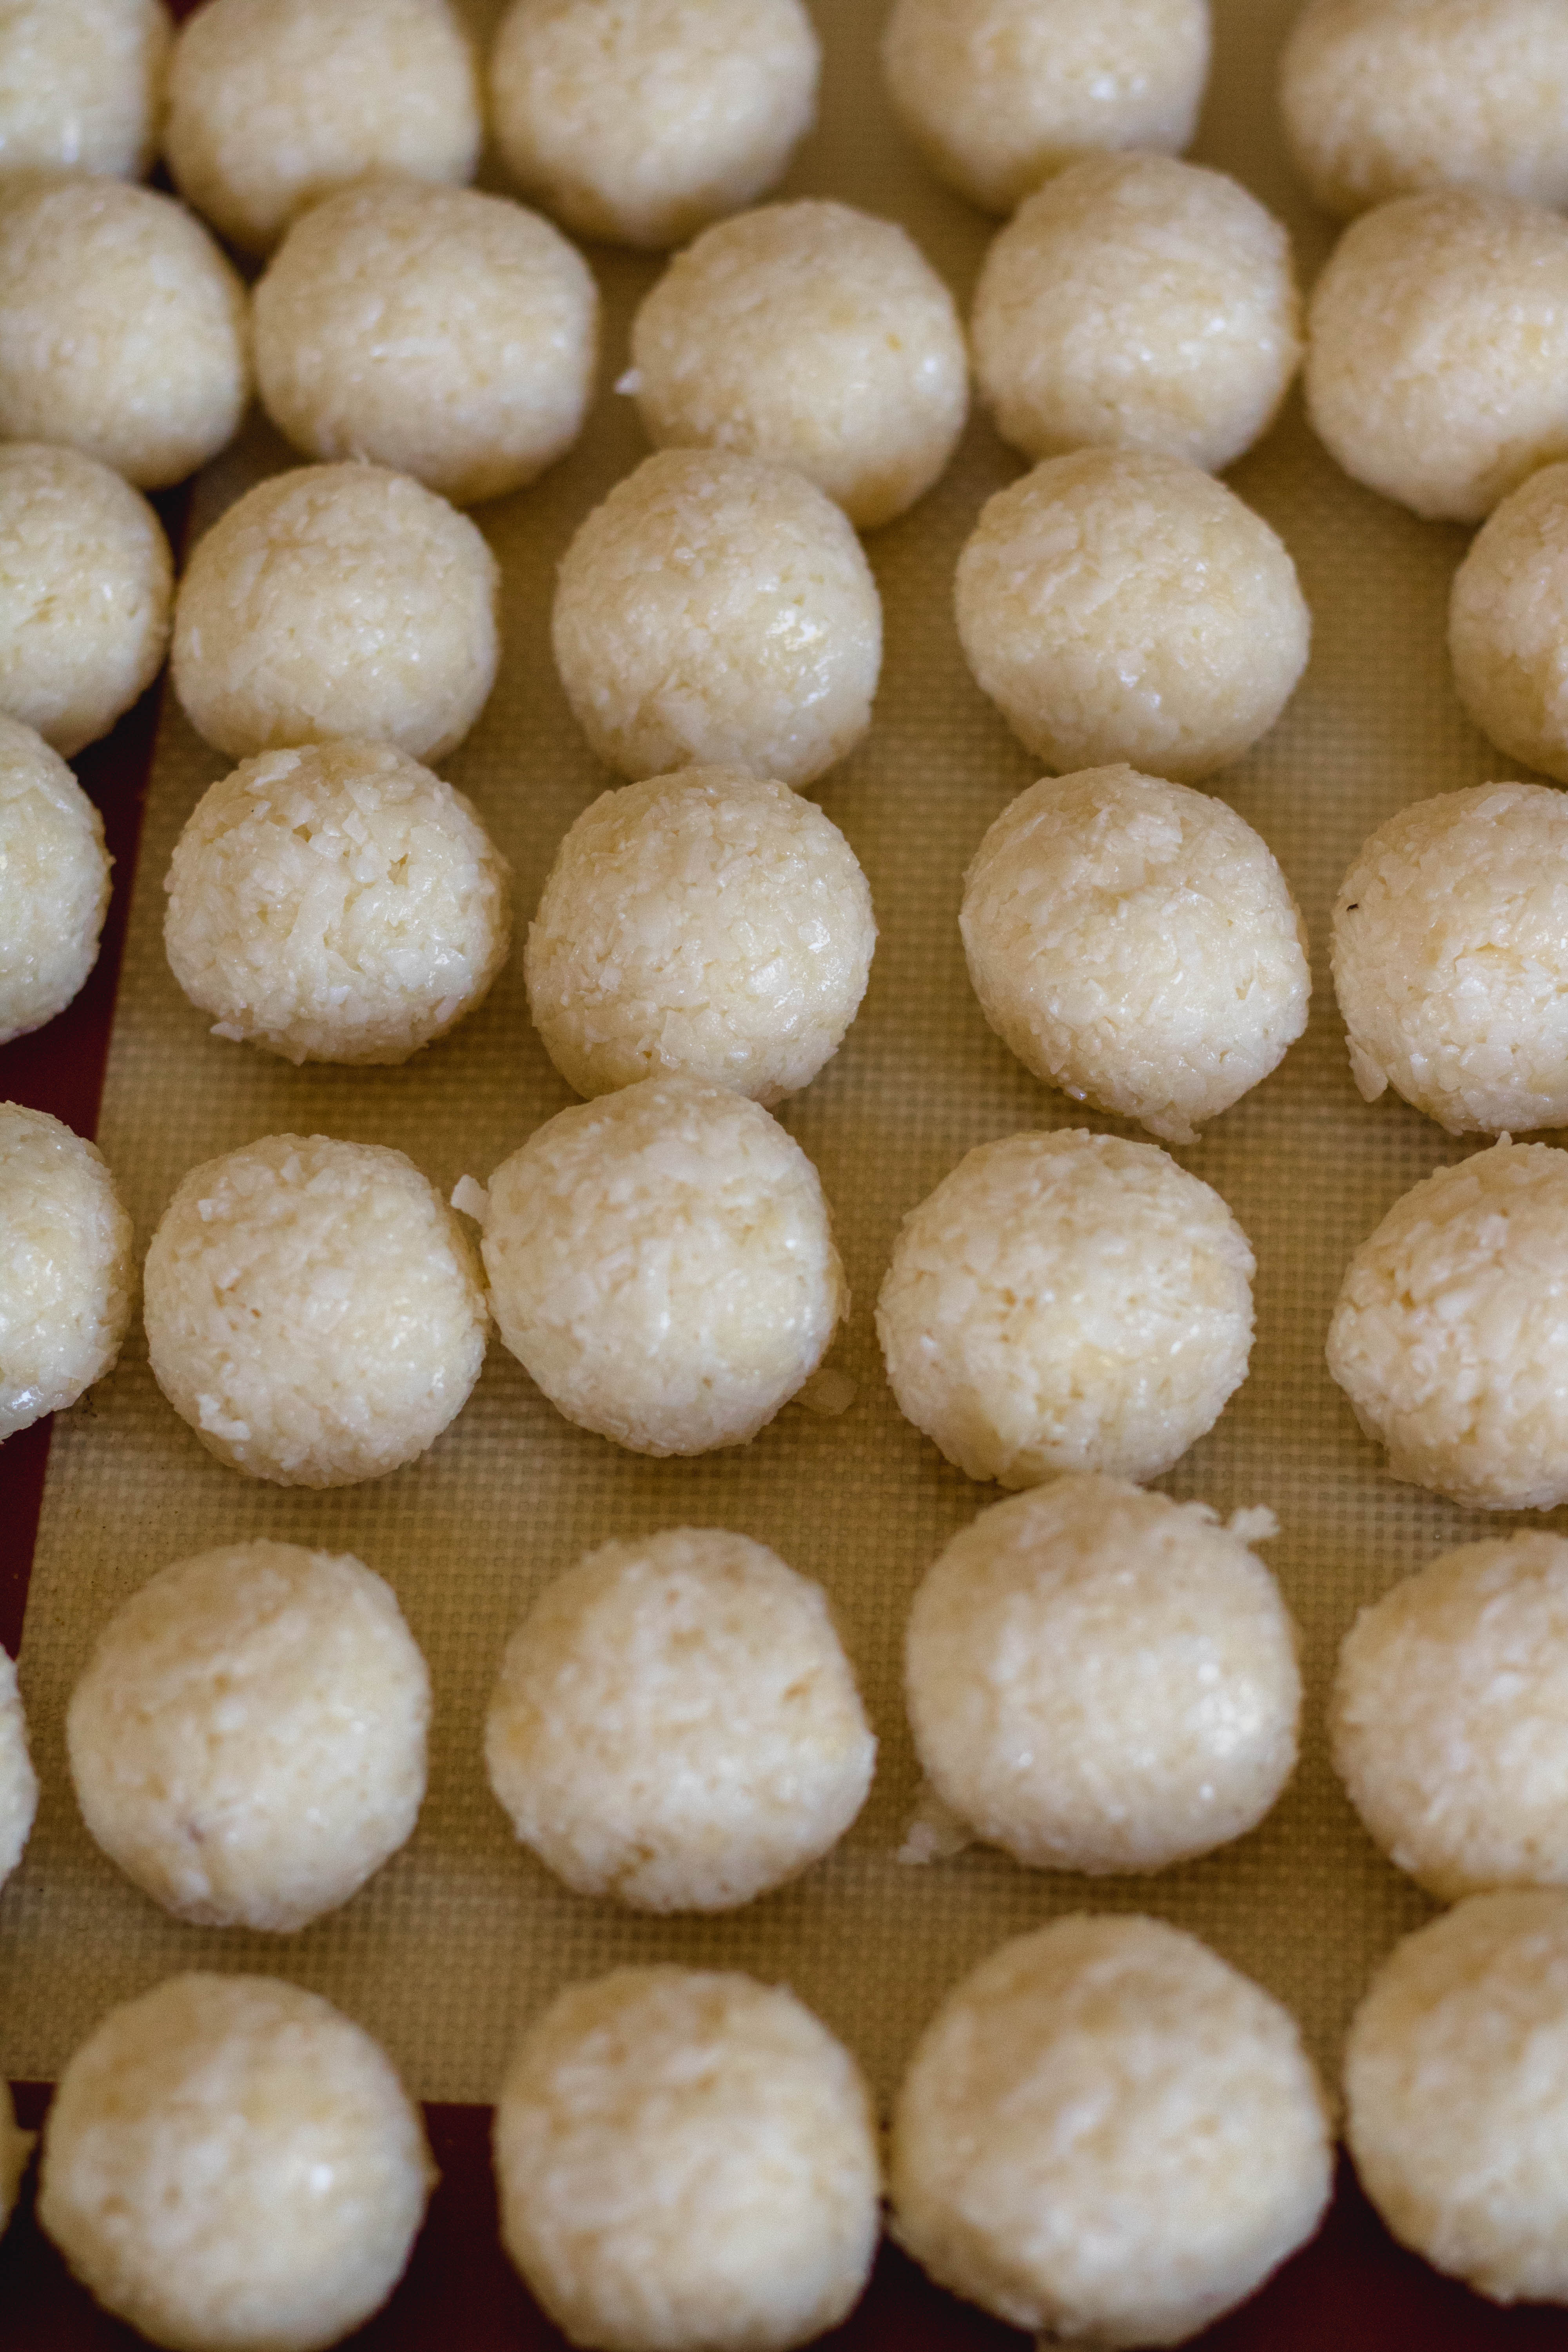 Rolled no bake coconut balls